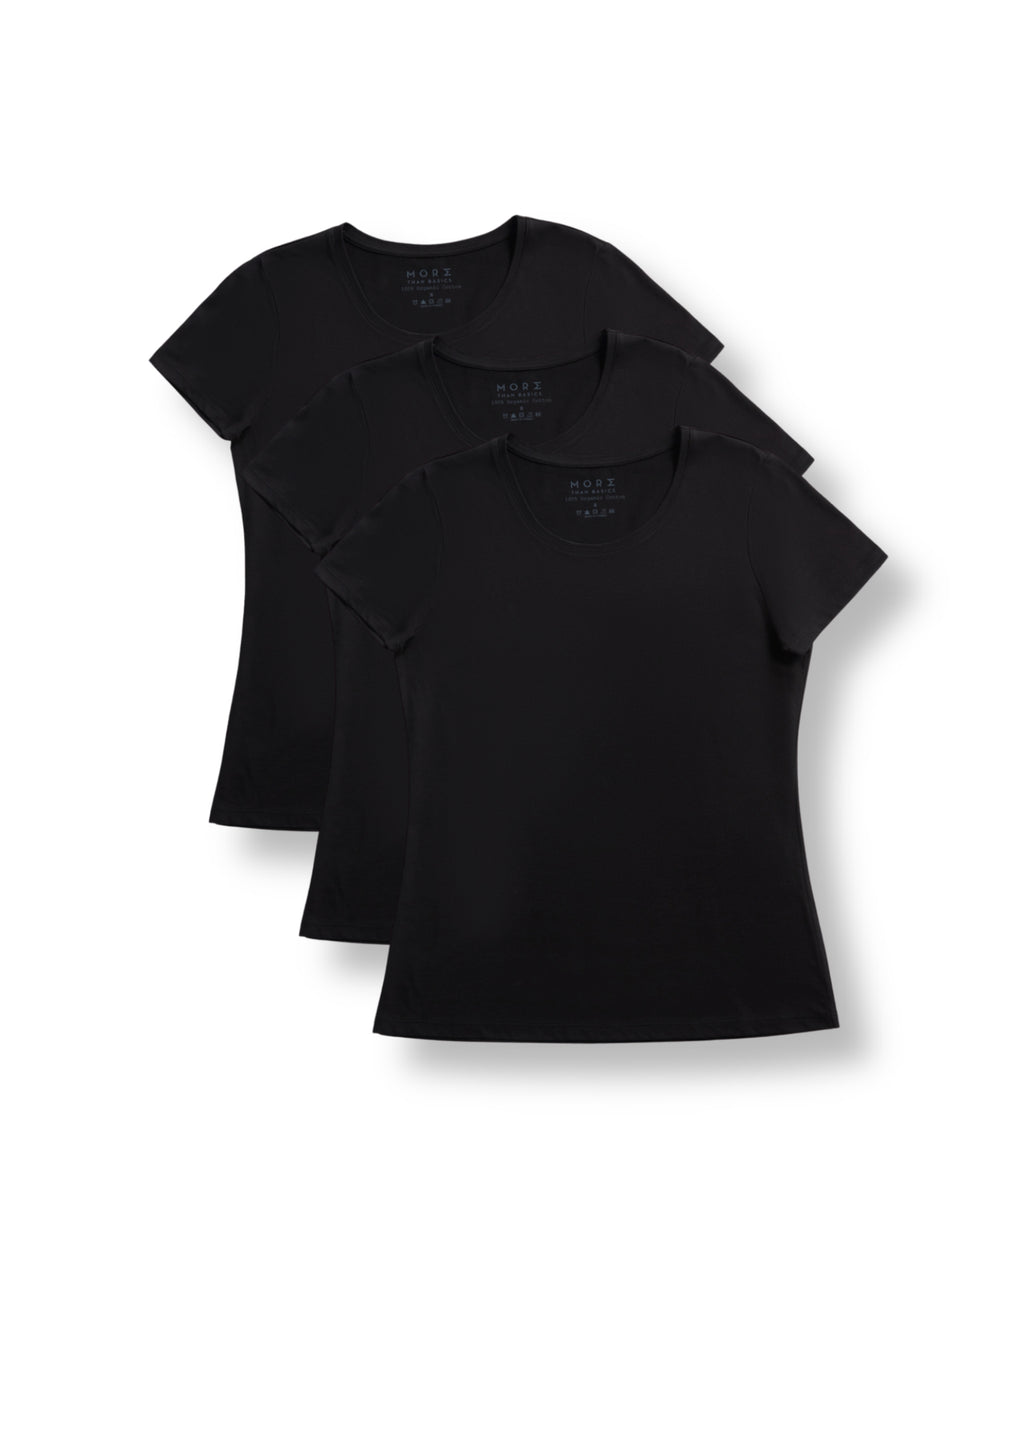 Women's TENCEL Modal Short-Sleeve Basic T-shirt 3-Pack